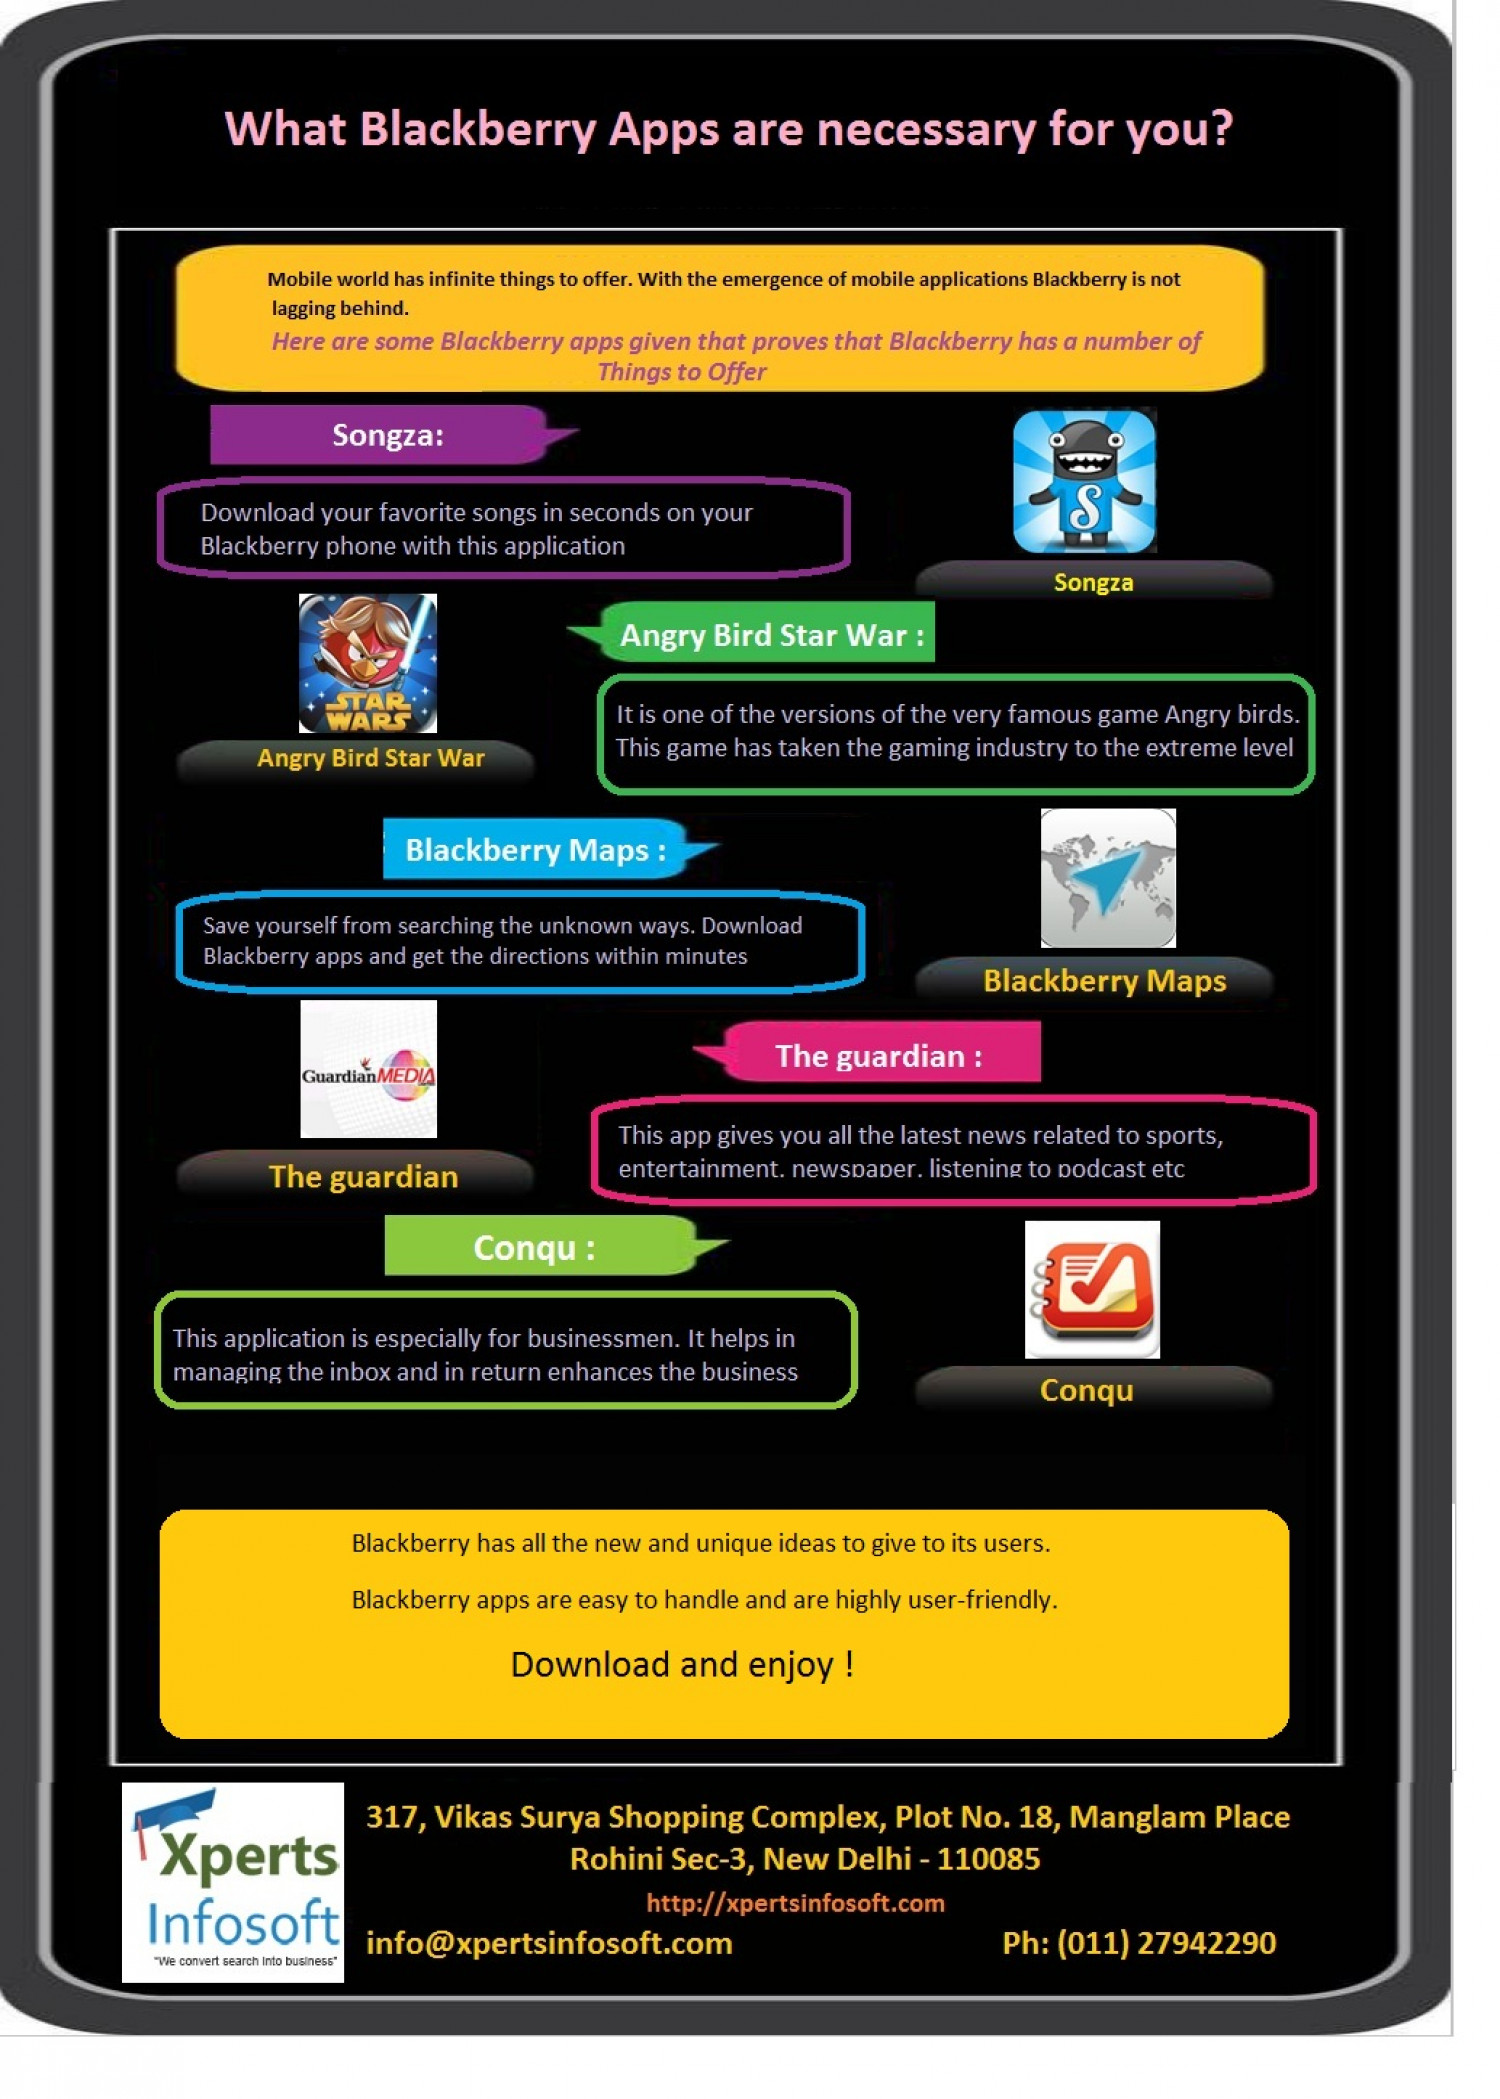 What Blackberry Apps necessary for your Blackberry phone Infographic